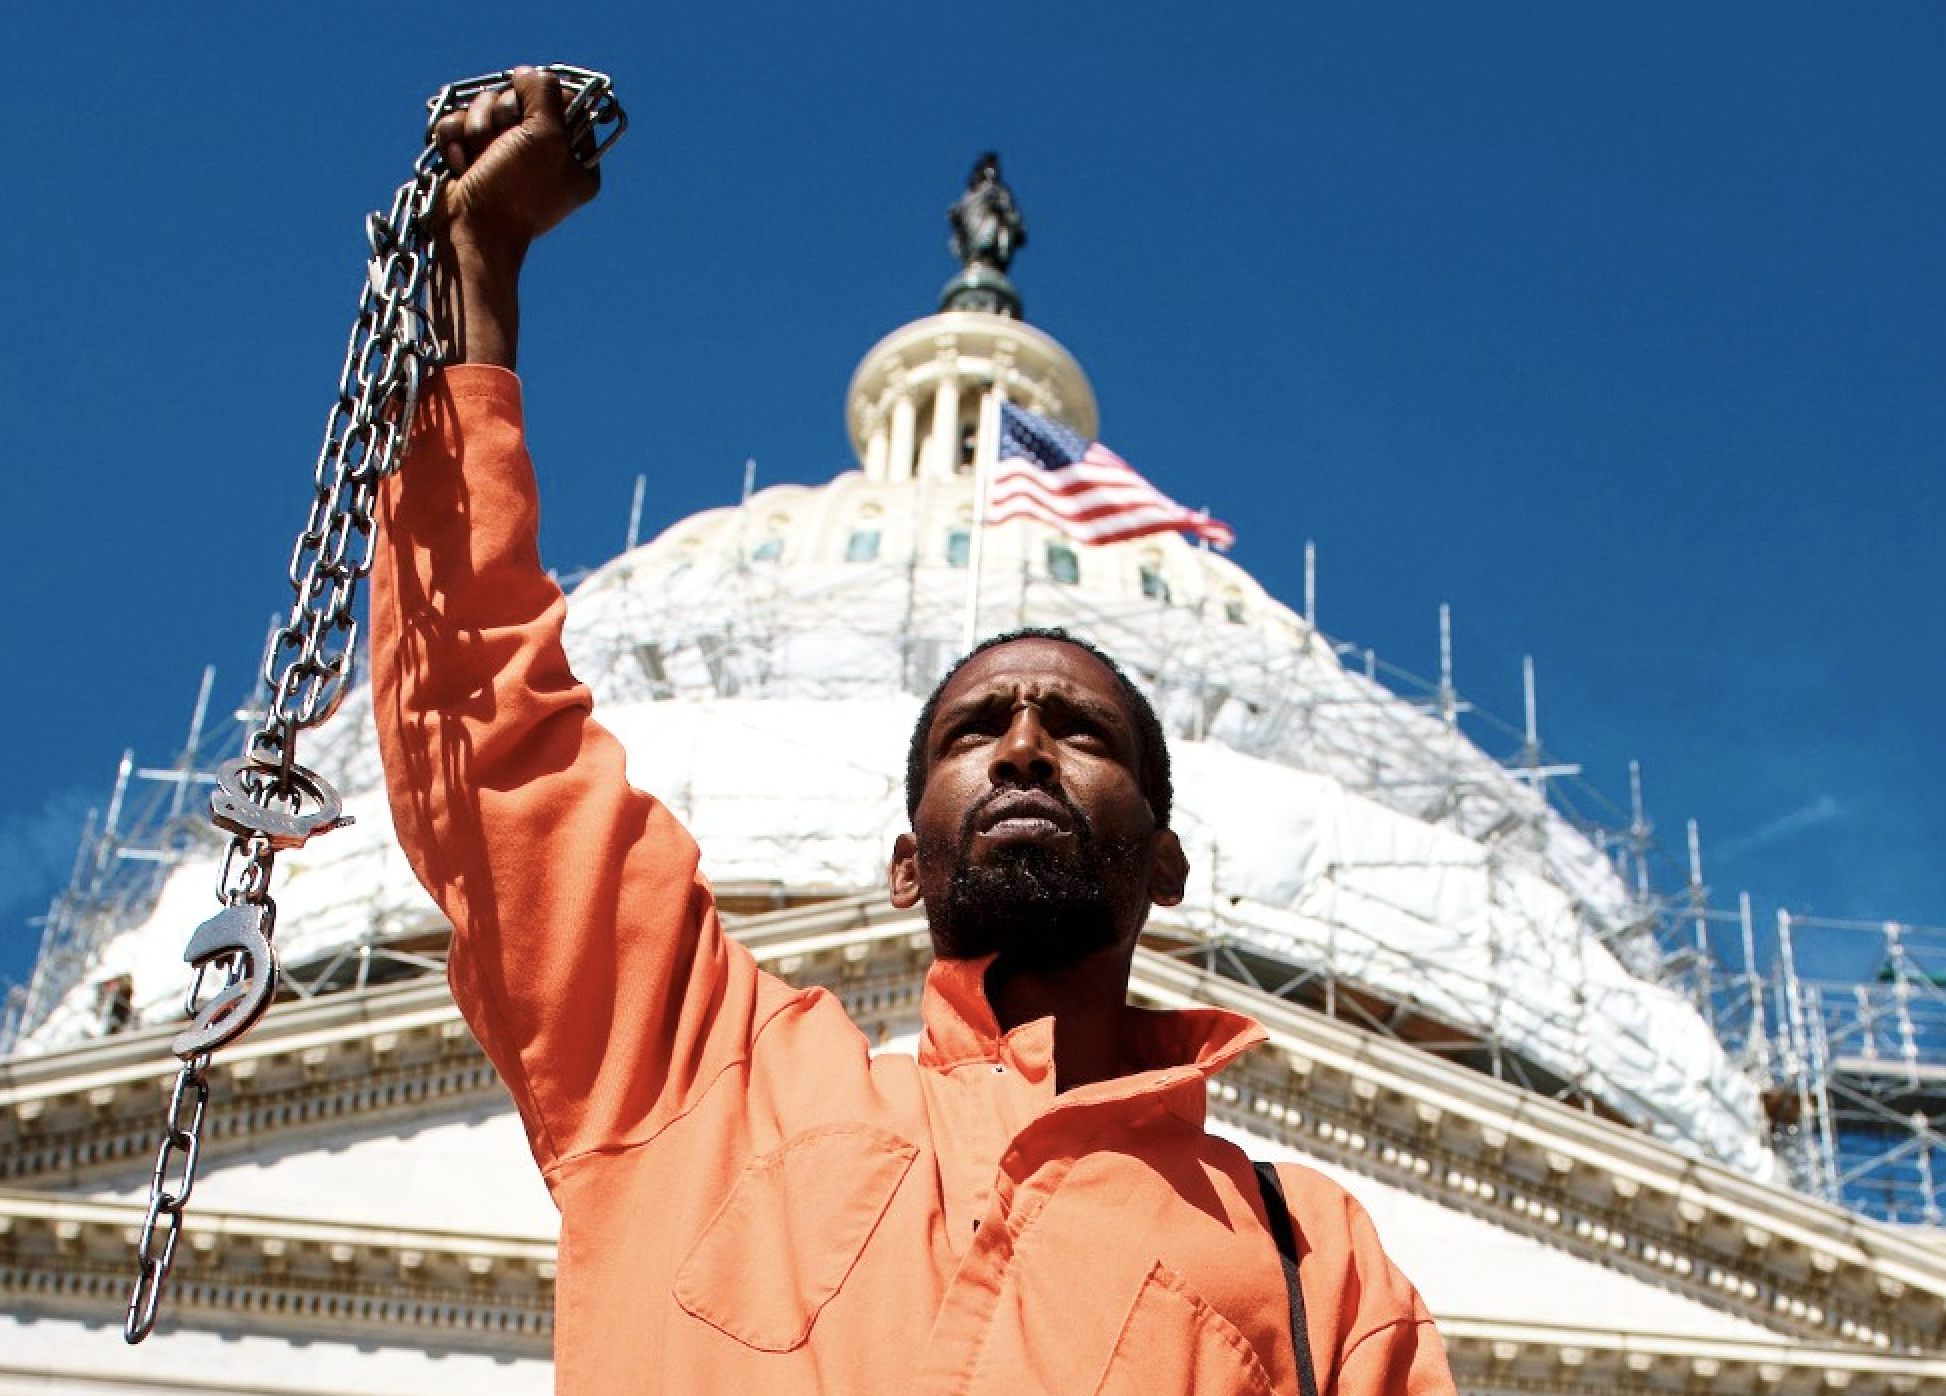 Bail reform confronts a system 'deeply ingrained into the American psyche'